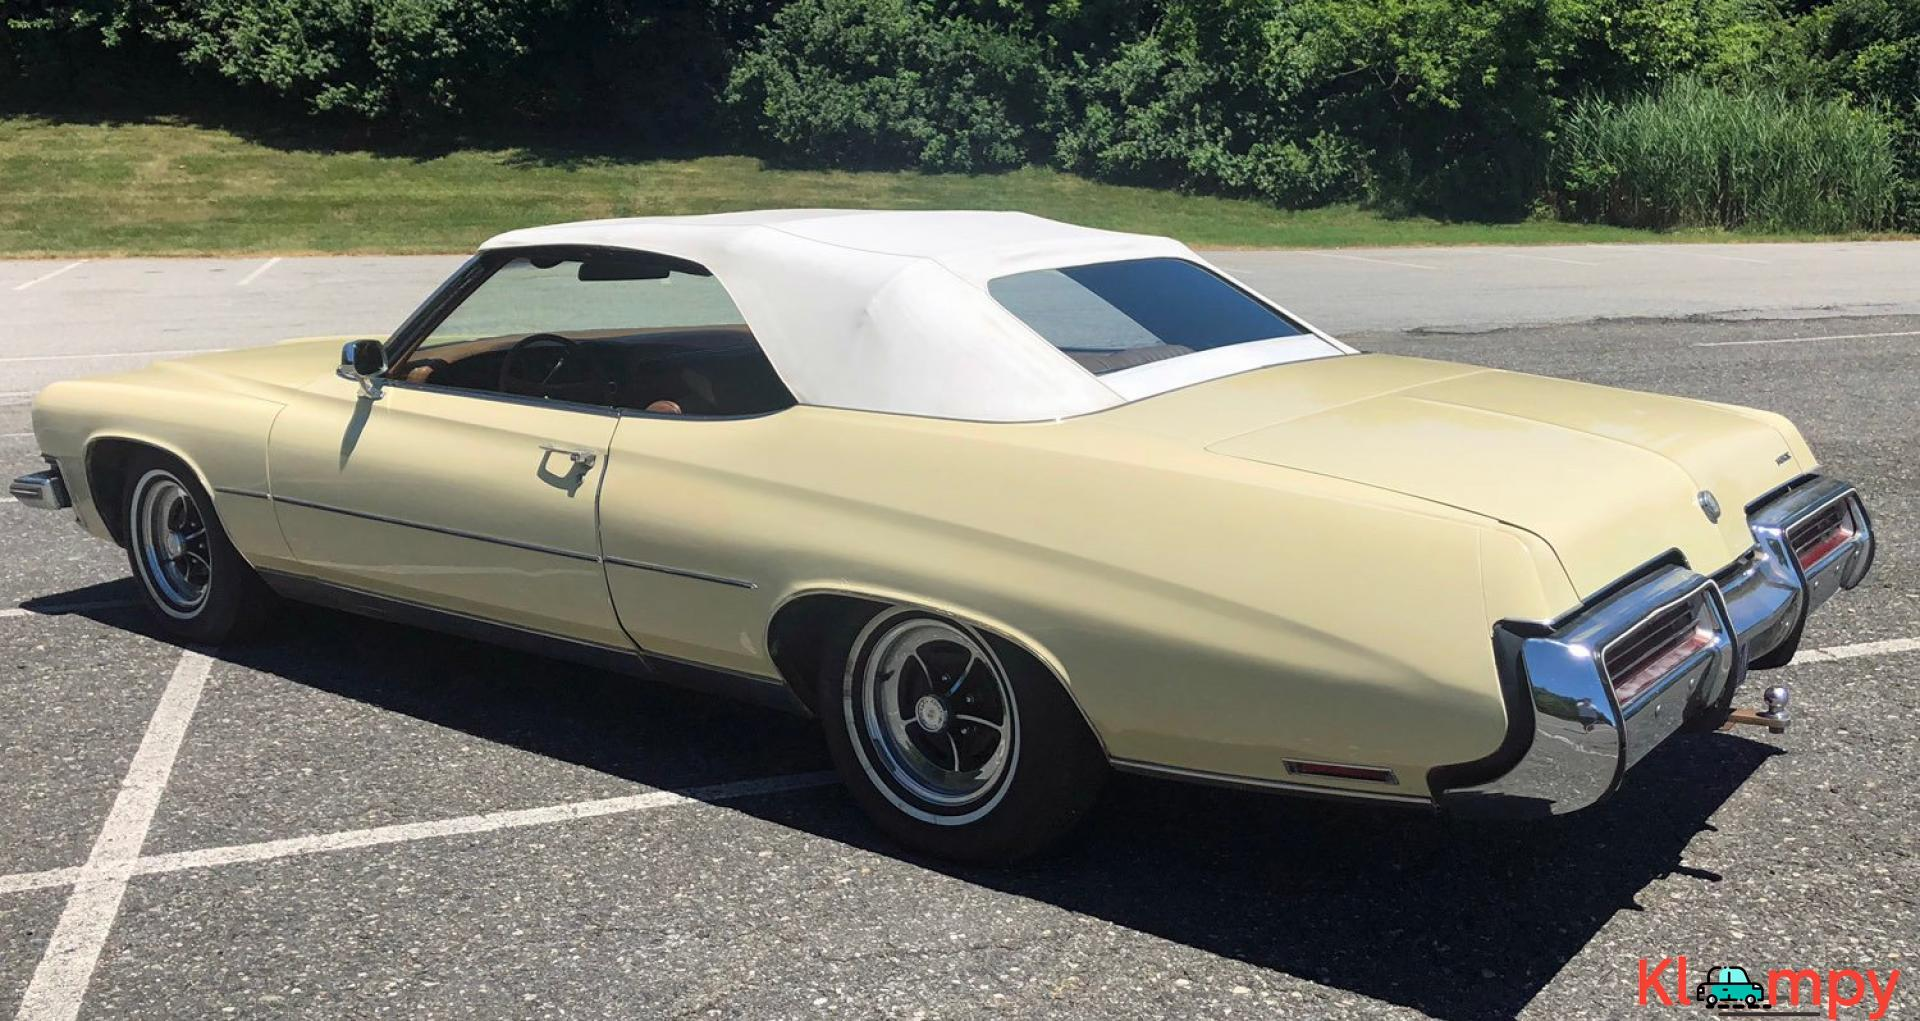 1973 Buick Centurion 350 Convertible V8 - 9/20